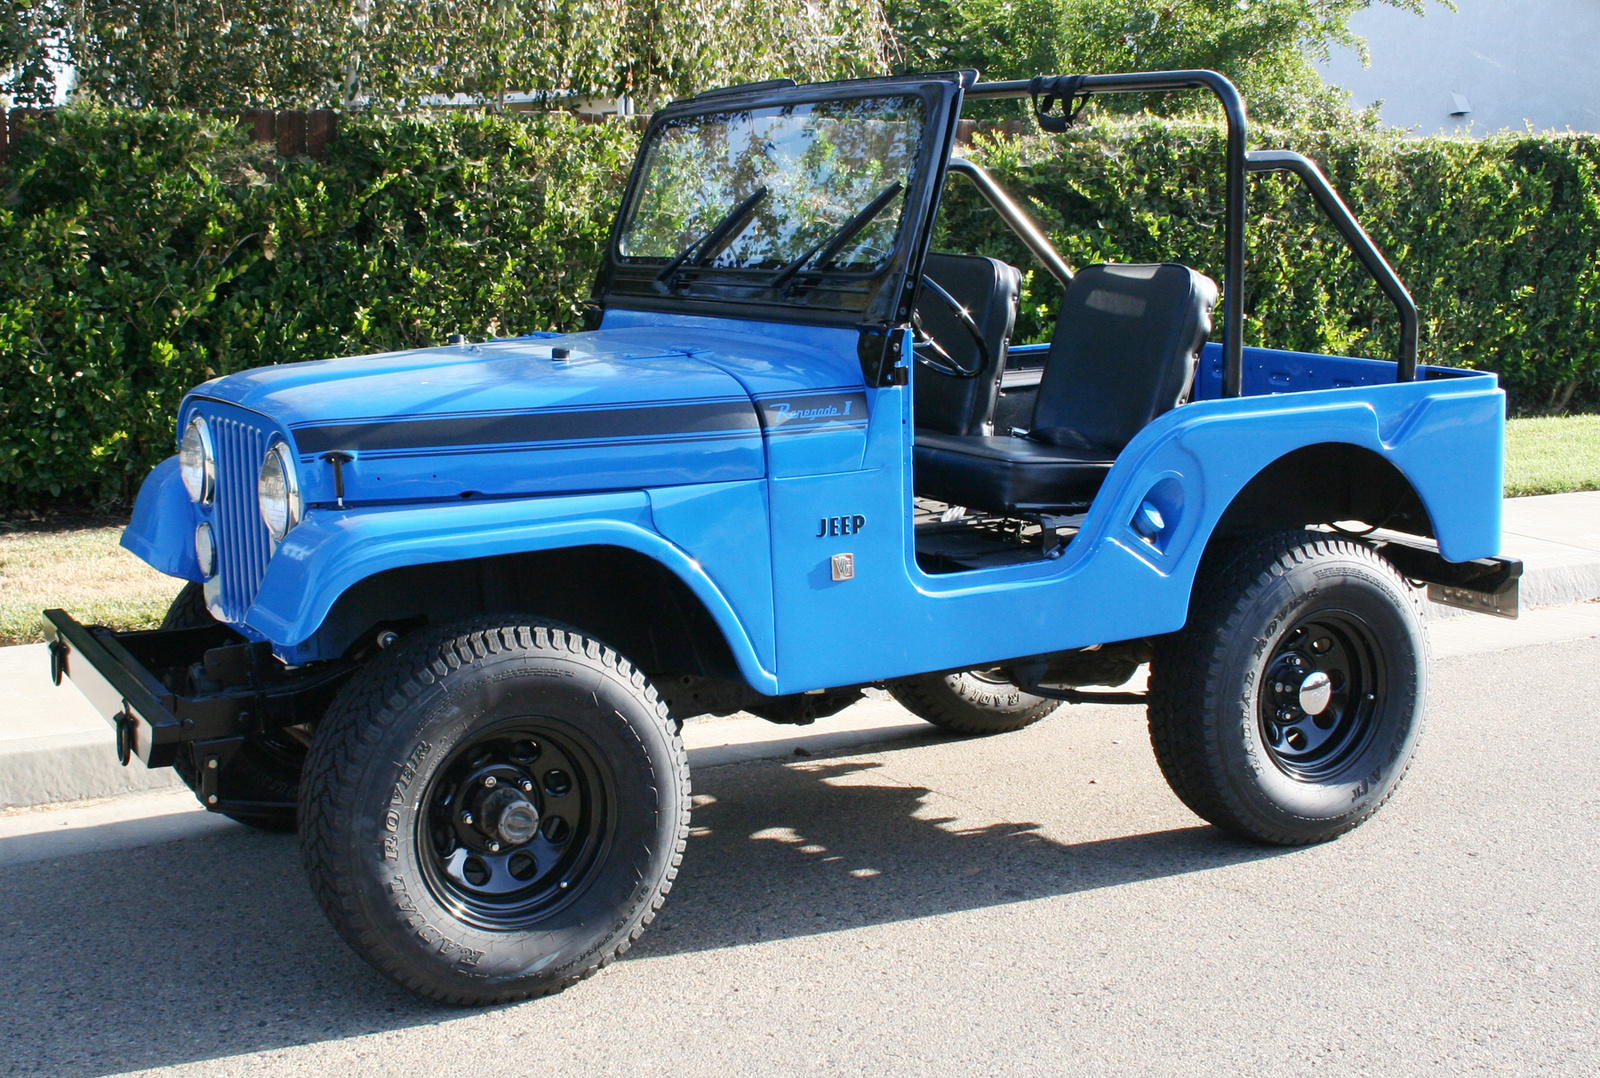 1981 jeep wagoneer pictures cargurus - 1970 Jeep Cj5 Overview Cargurus